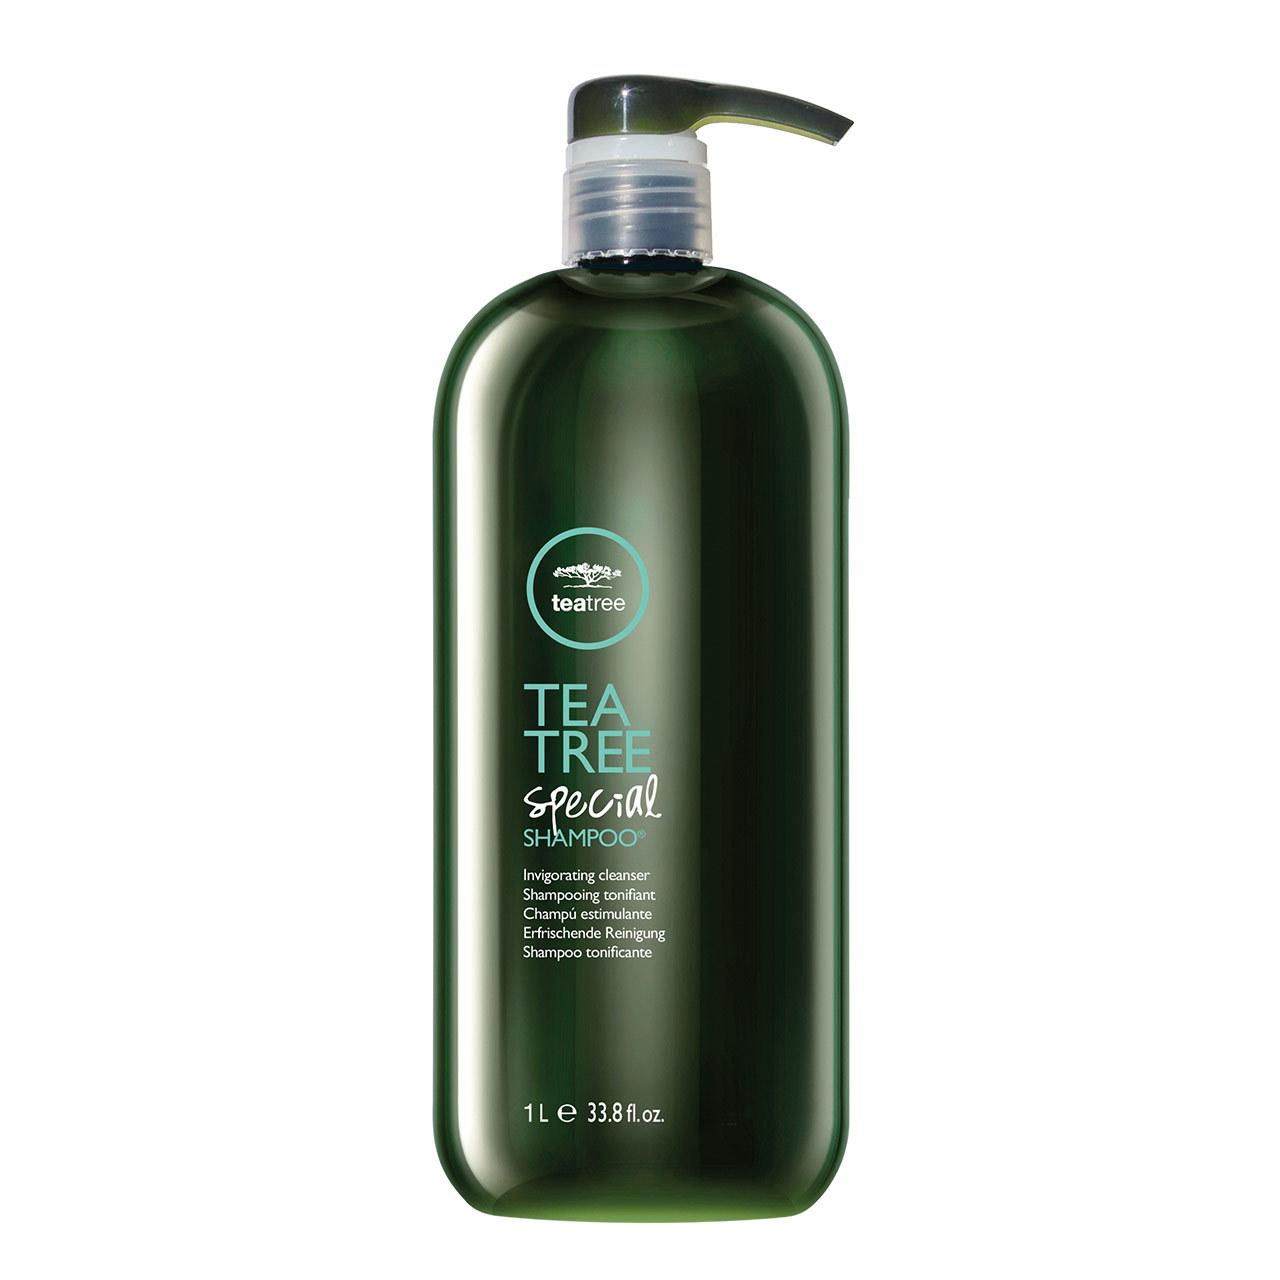 Paul Mitchell Tea Tree Special Shampoo 1000ml Invigorating Cleanser (expiry: May 2022) By Beautifullymade.